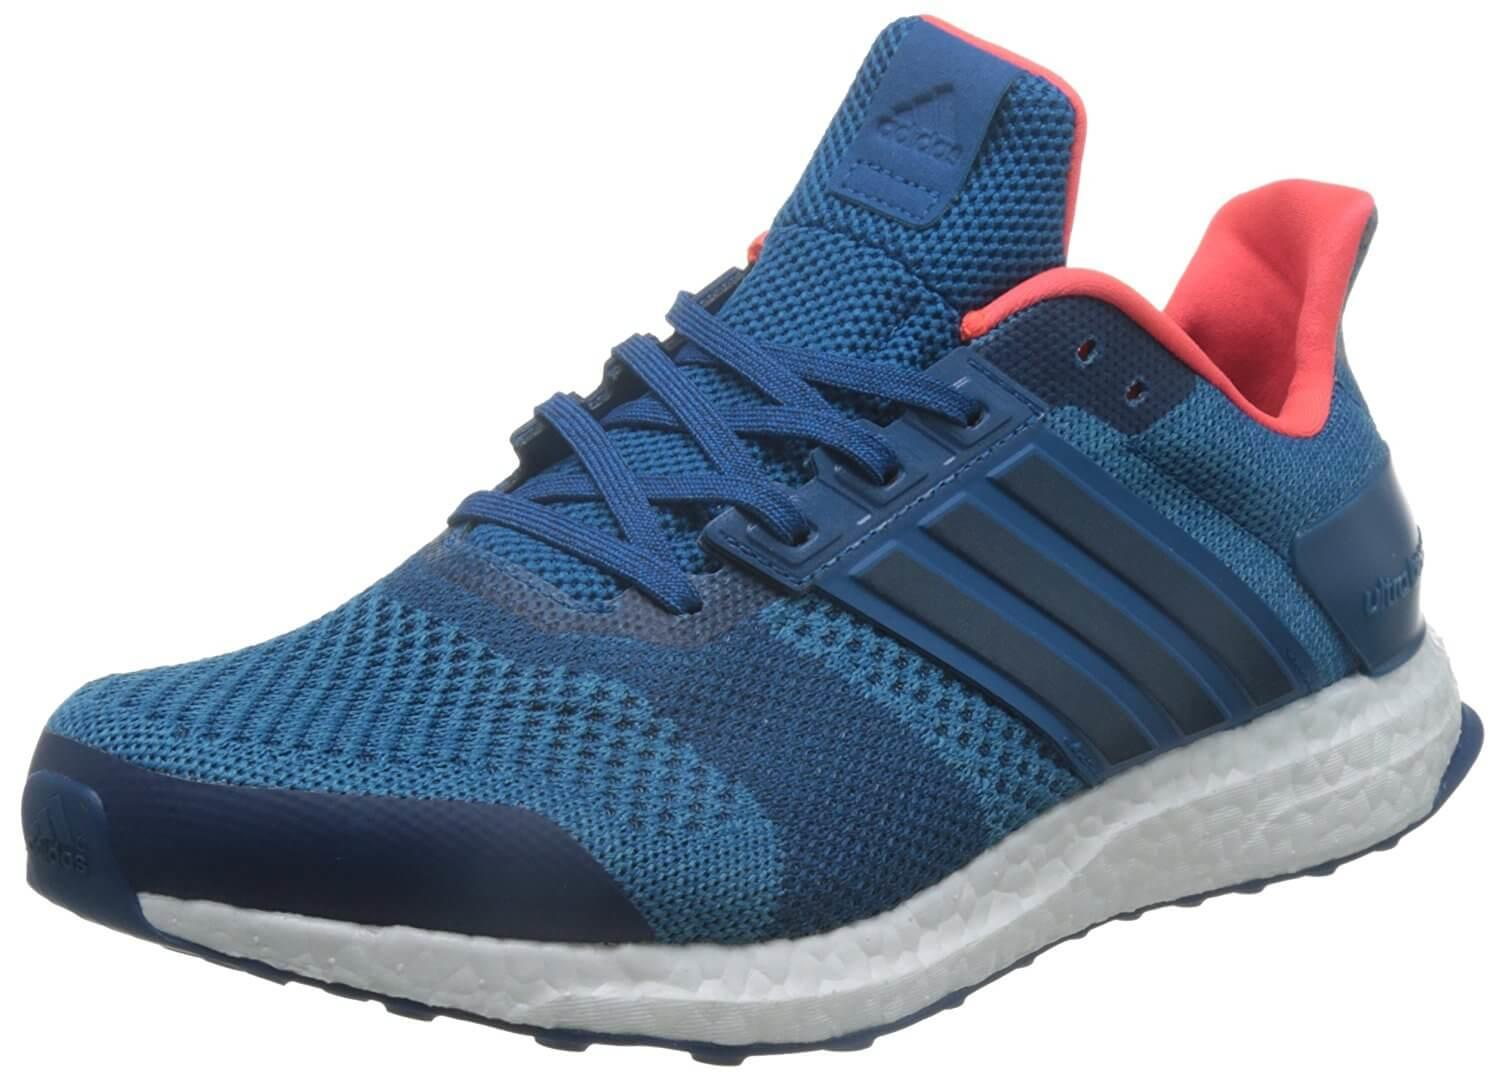 premium selection e7ac3 88d76 ... coupon code for adidas ultra boost st review buy or not in sep 2018  7291c 08263